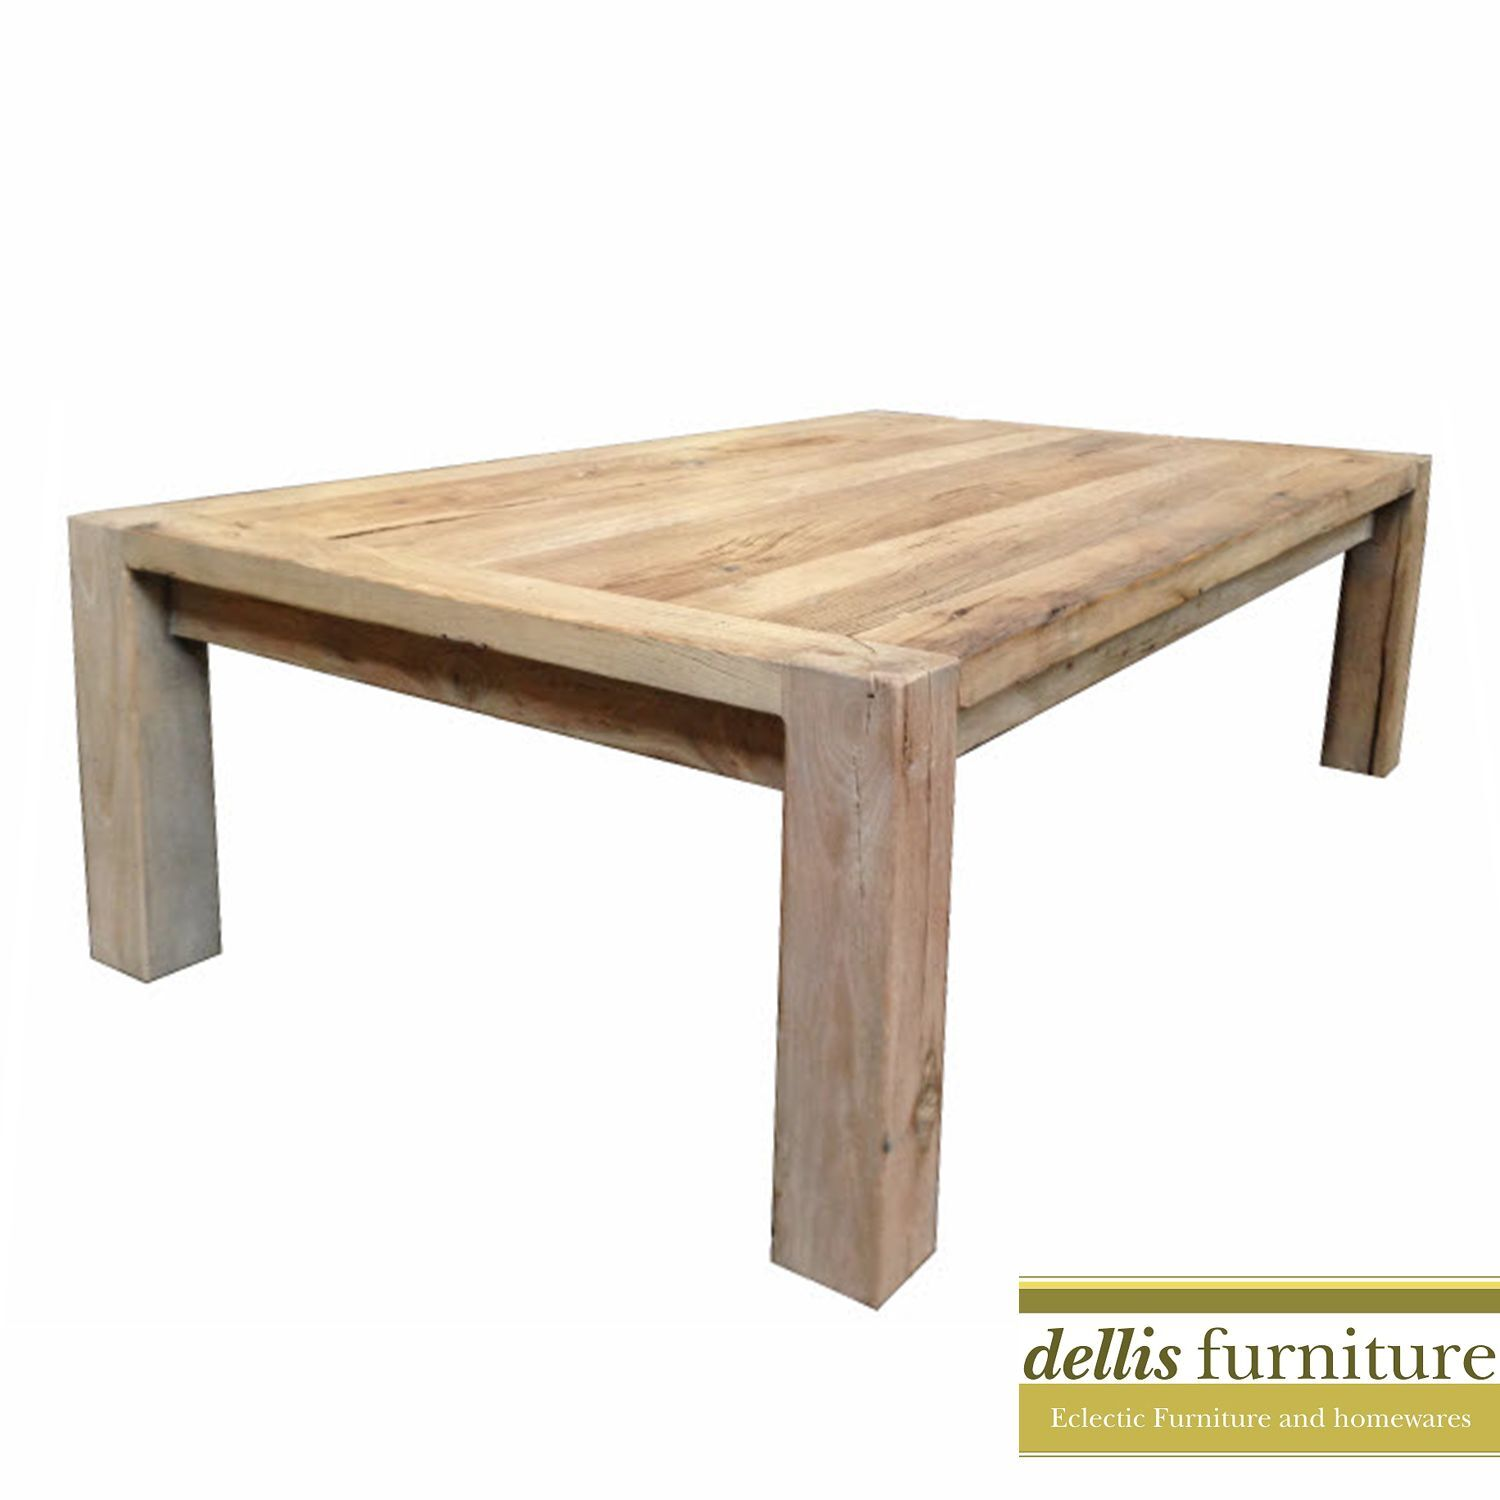 DEAL 39 Madrid 39 Recycled Elm Timber Dining Set TABLE 200cm 2 BENC